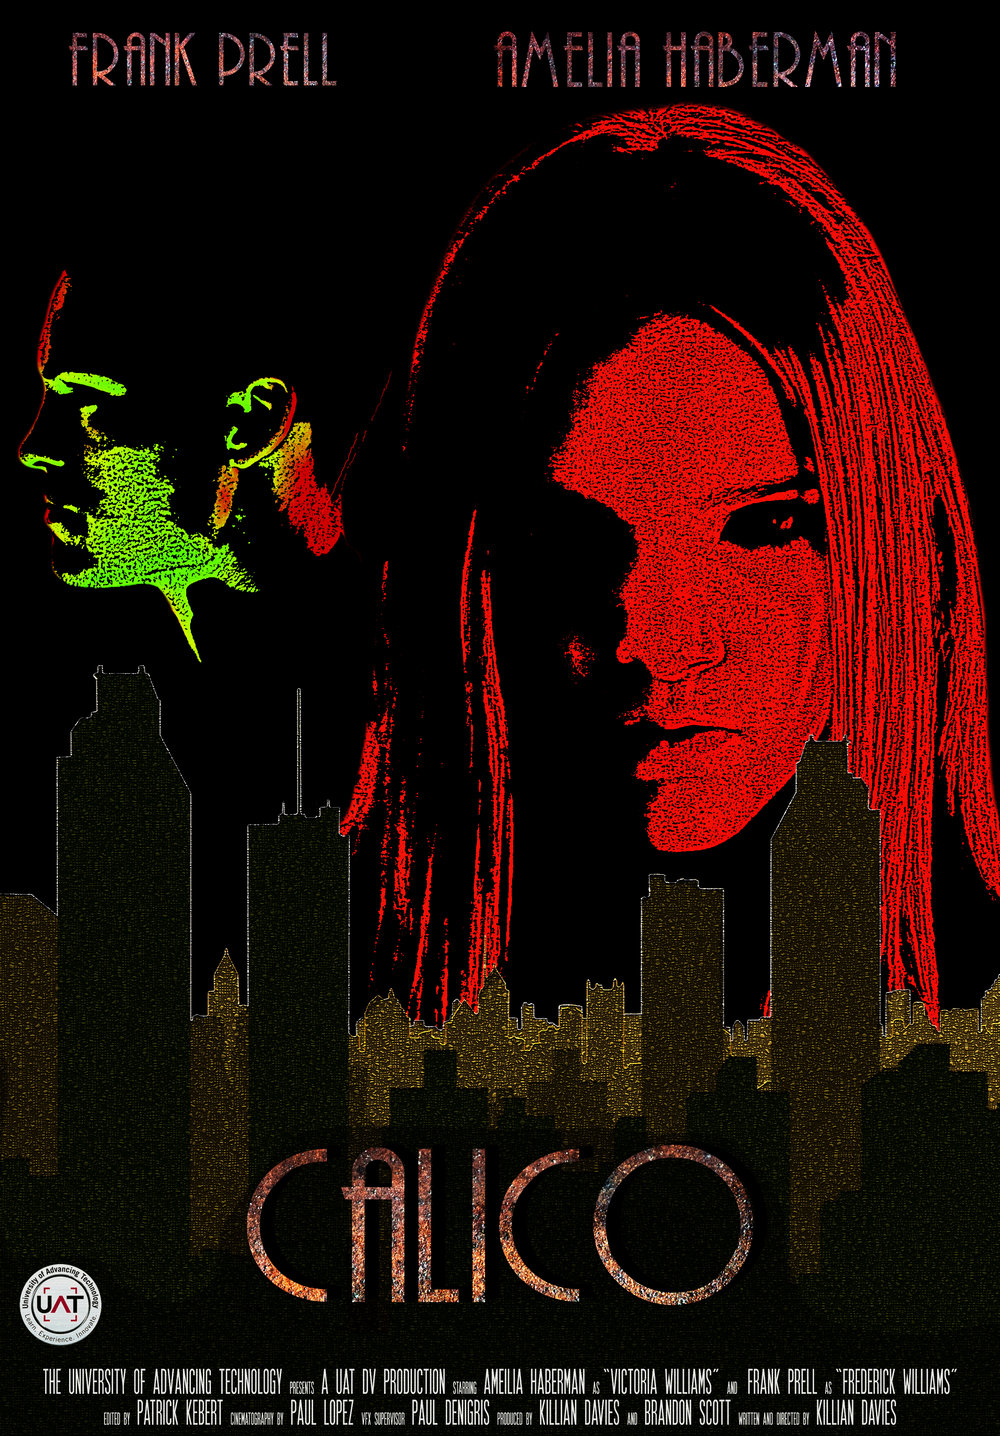 Calico (2016) - Official selection of Gencon 2017 Film Festival, Calico is a short film by then student director Killian Davies and stars Frank Prell and rising star Amelia Haberman.